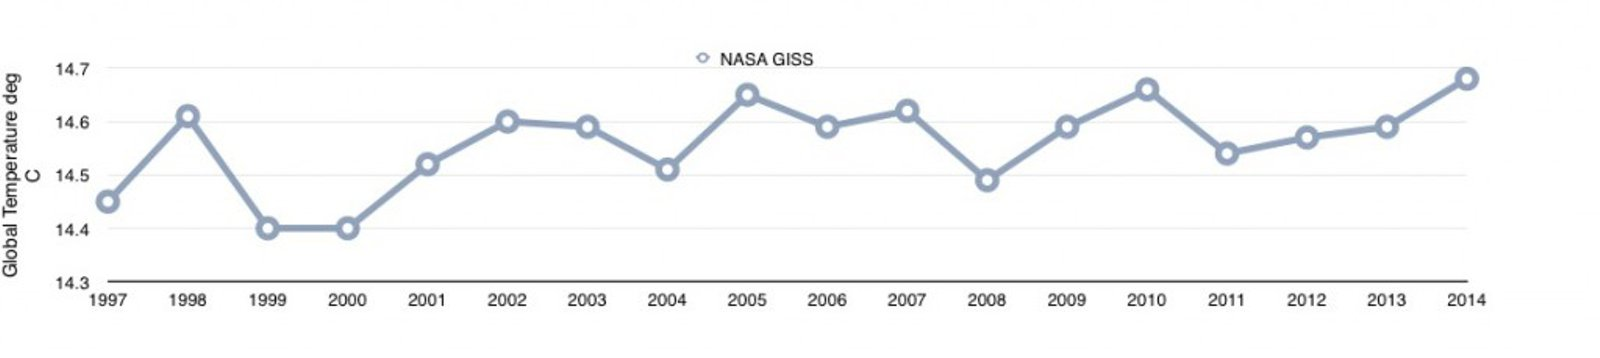 NASA GISS 2014 average